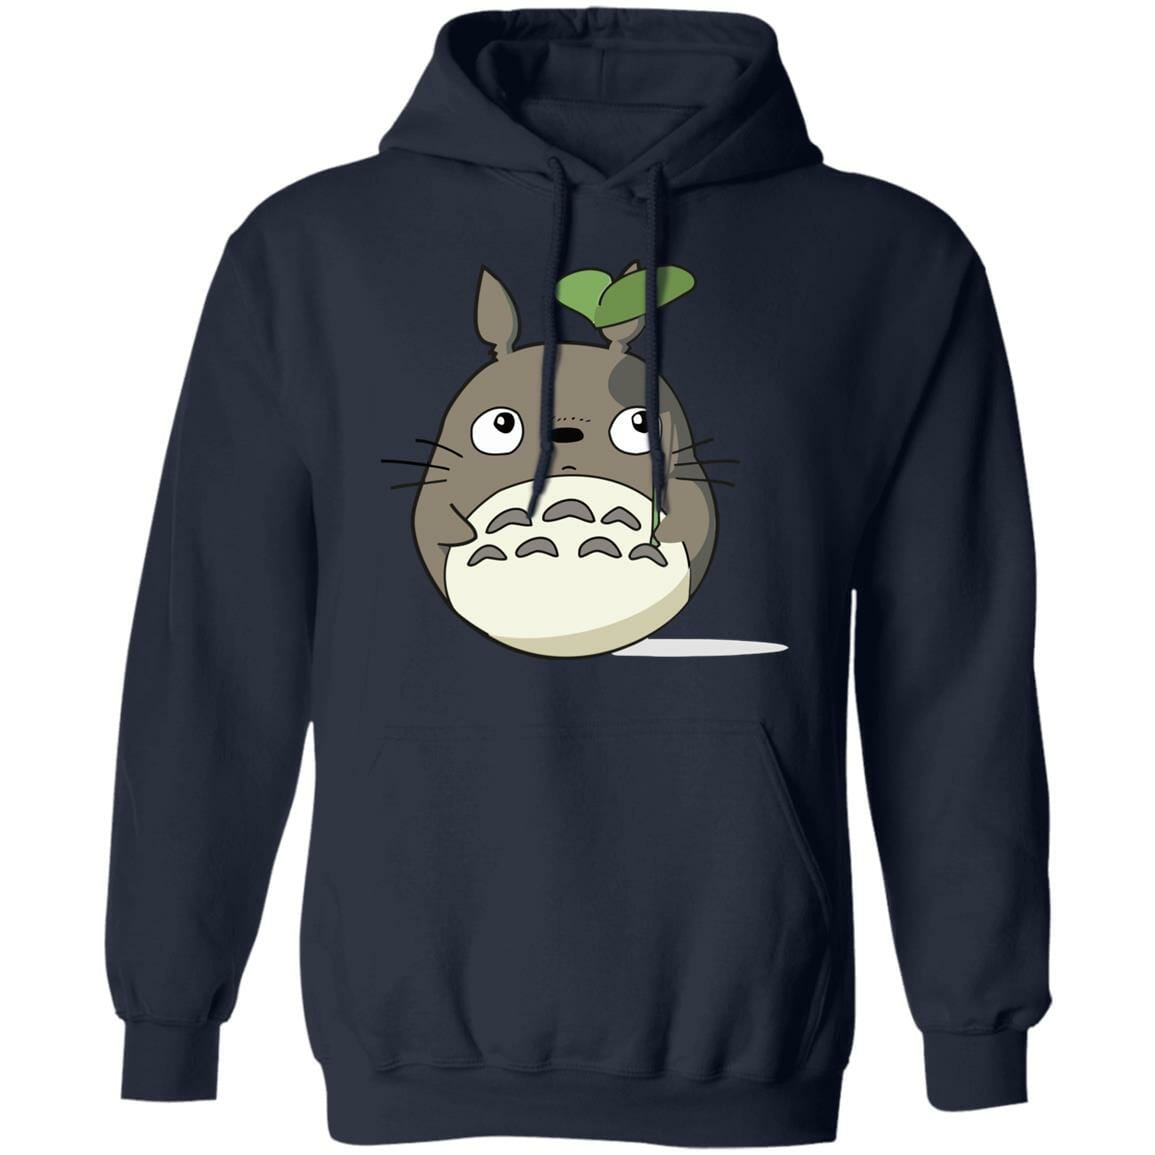 Totoro and the Leaf Umbrella Hoodie